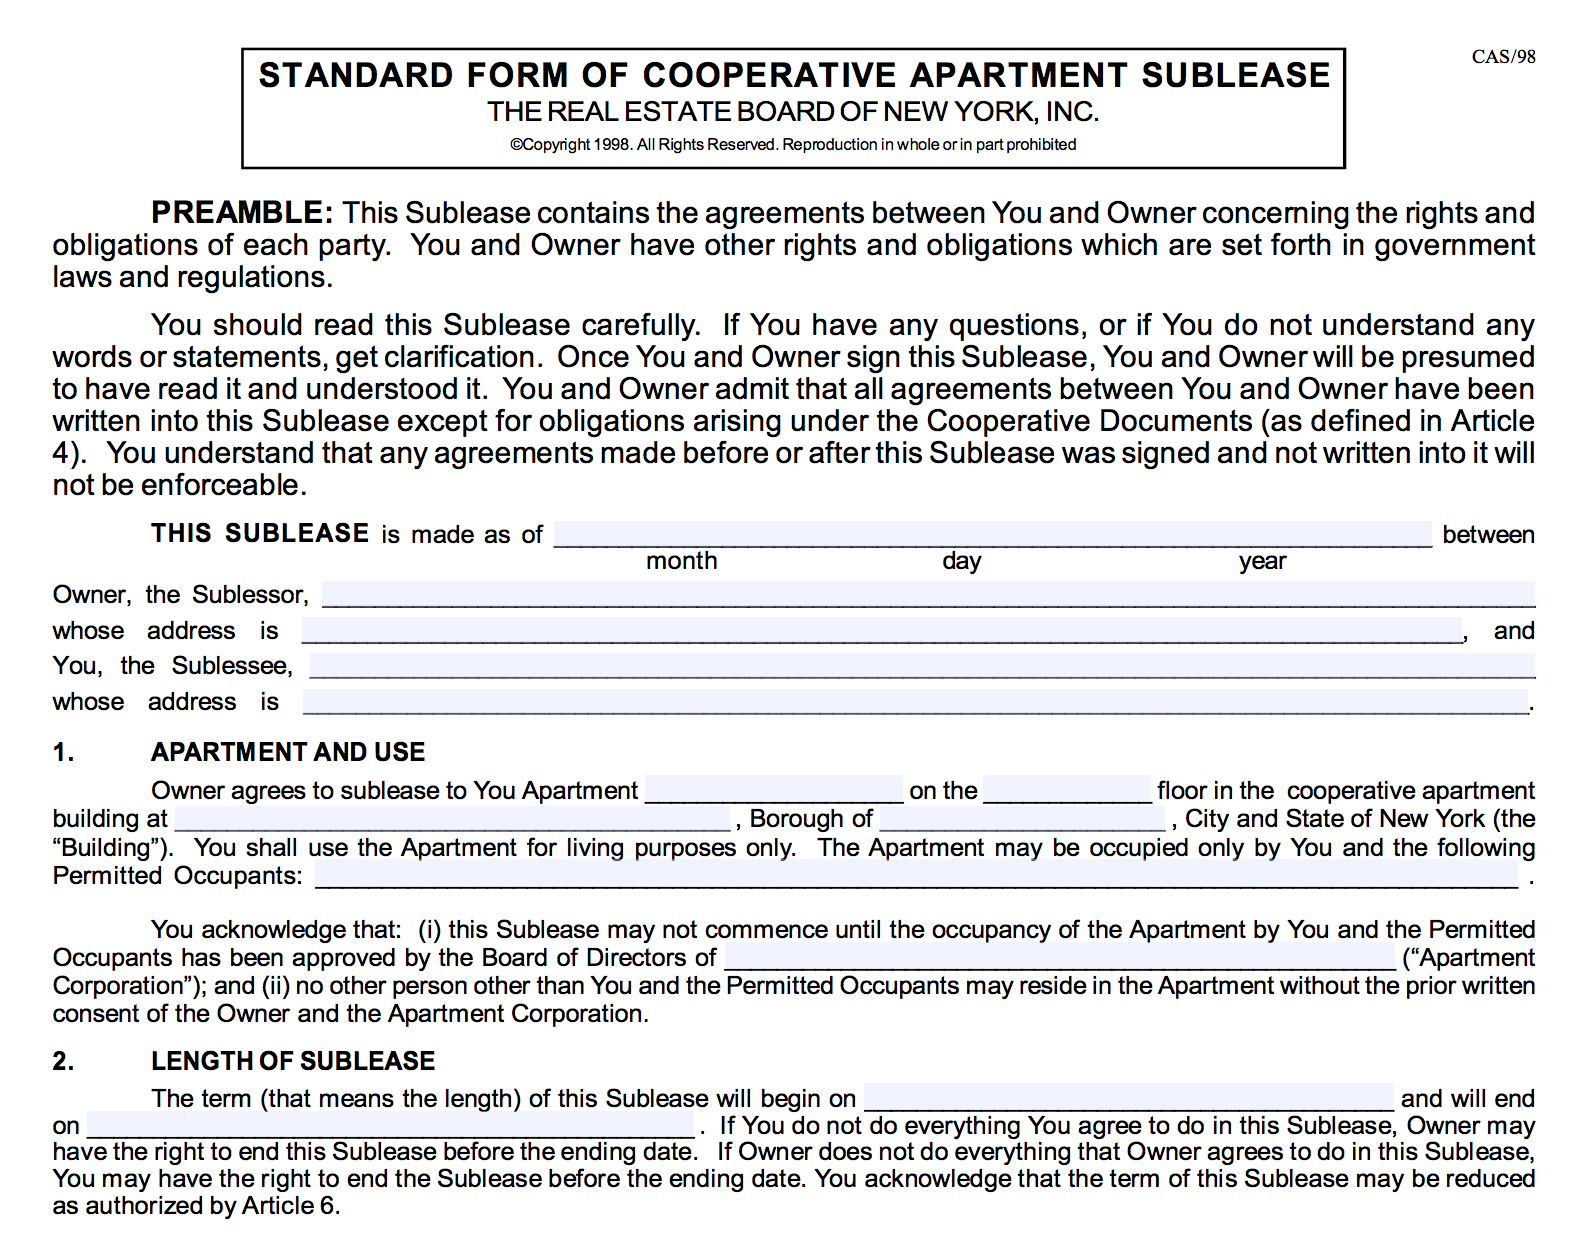 Subletting and Possible Cooperative Rule Violations — New York Real